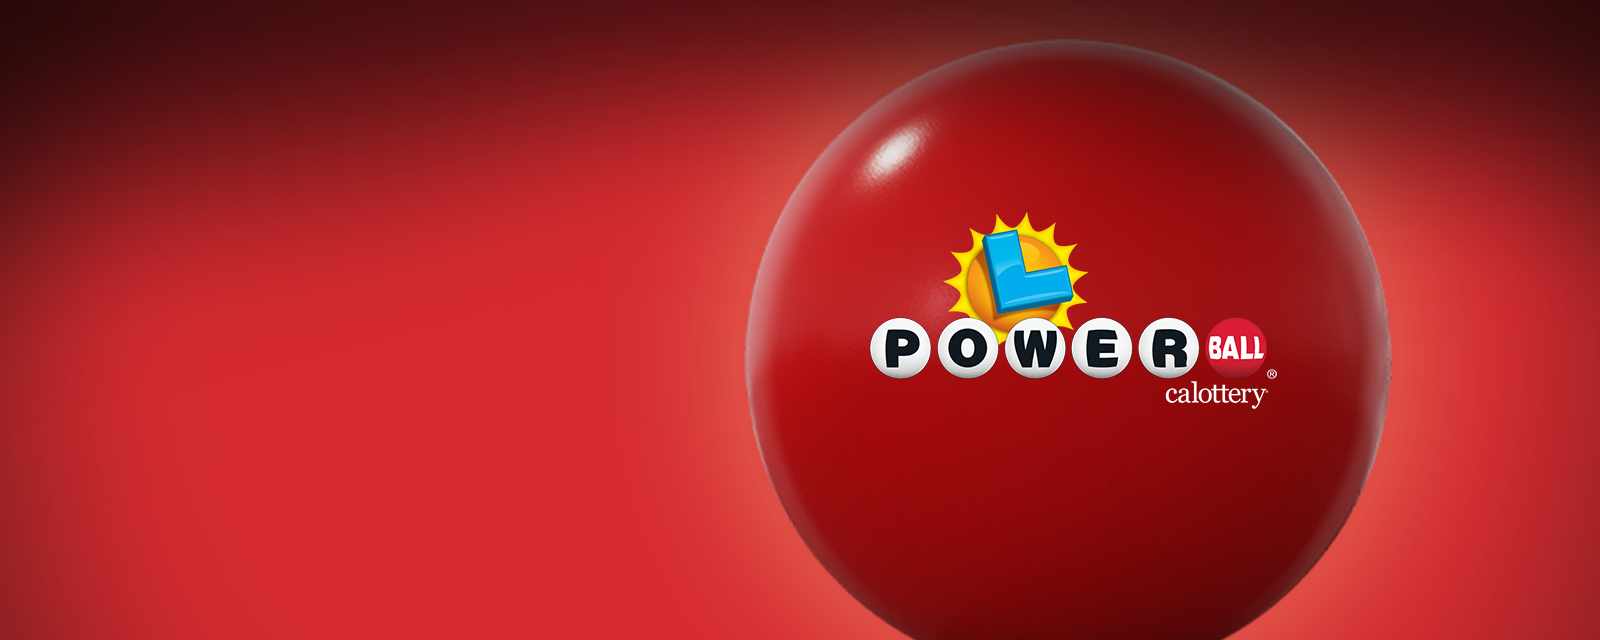 A red background with a big red ball. The ball has the Powerball logo on it